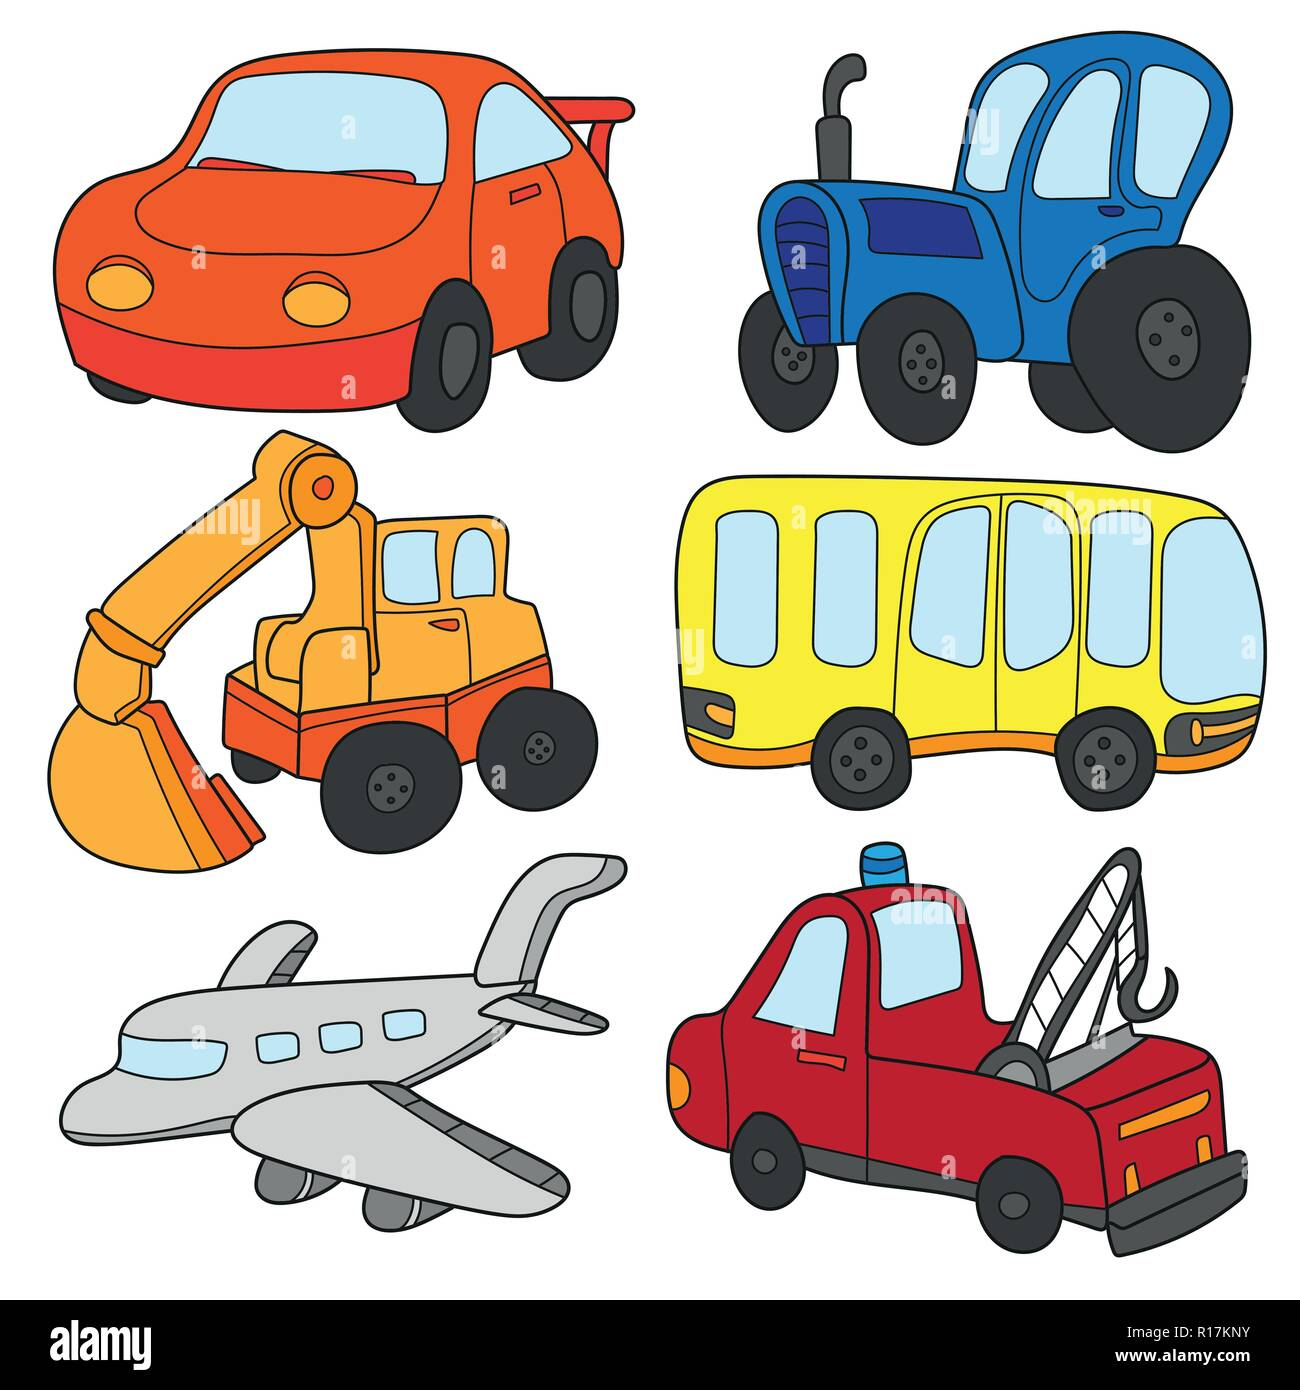 Cartoon Cars Collection Vector Of Transportation Theme With Car